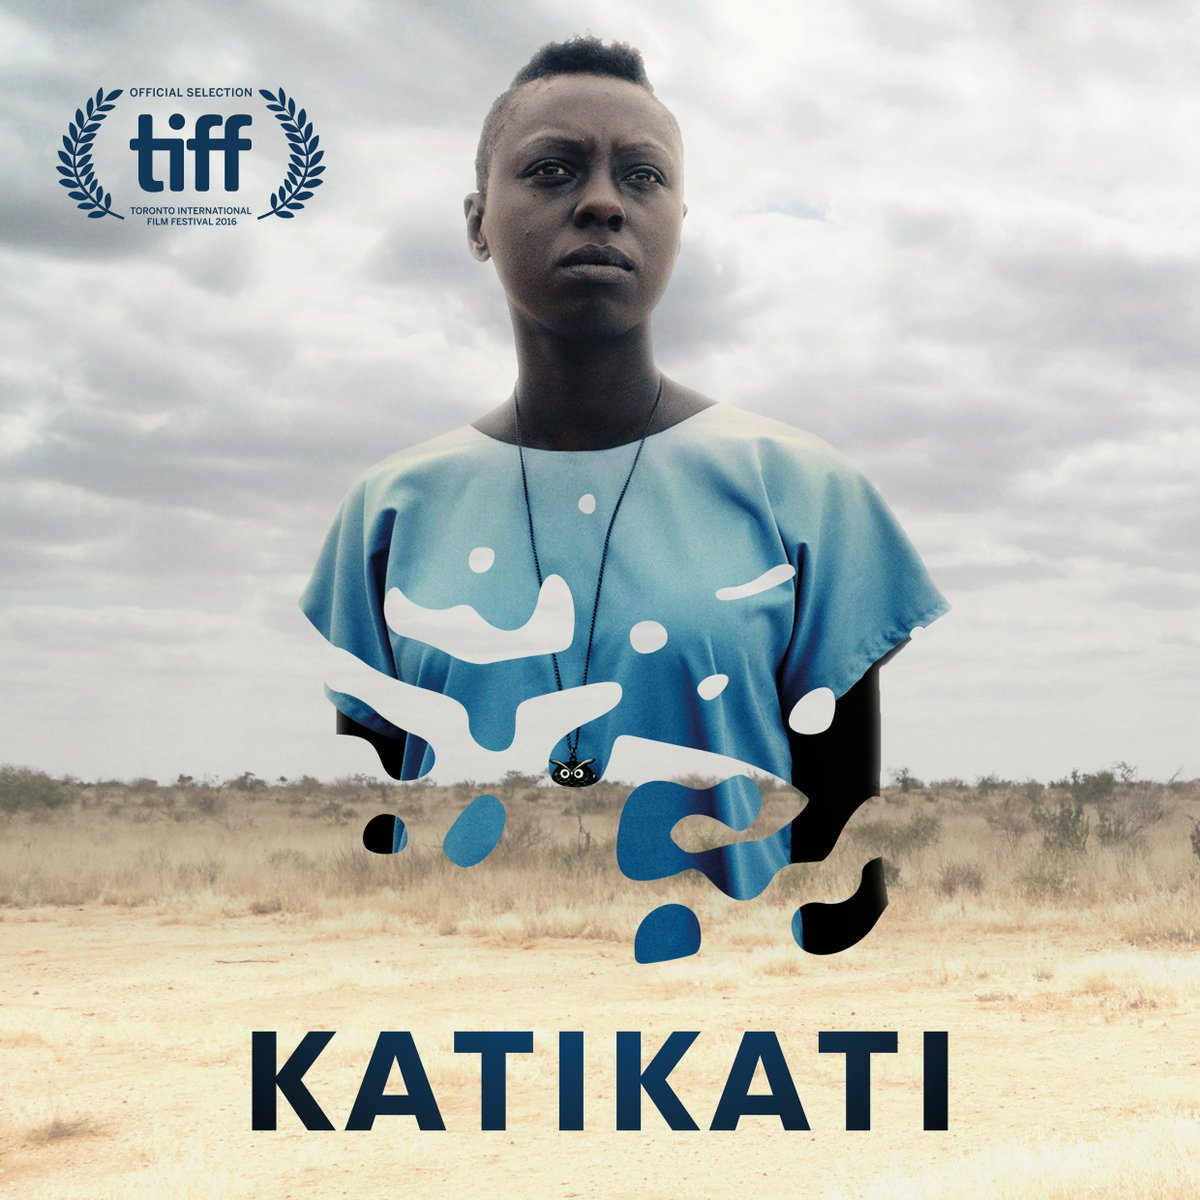 Honoured & so grateful that our little film, #KatiKati, will premiere at @TIFF_NET! Thank you @cameron_tiff! https://t.co/yYo8x4c1jj